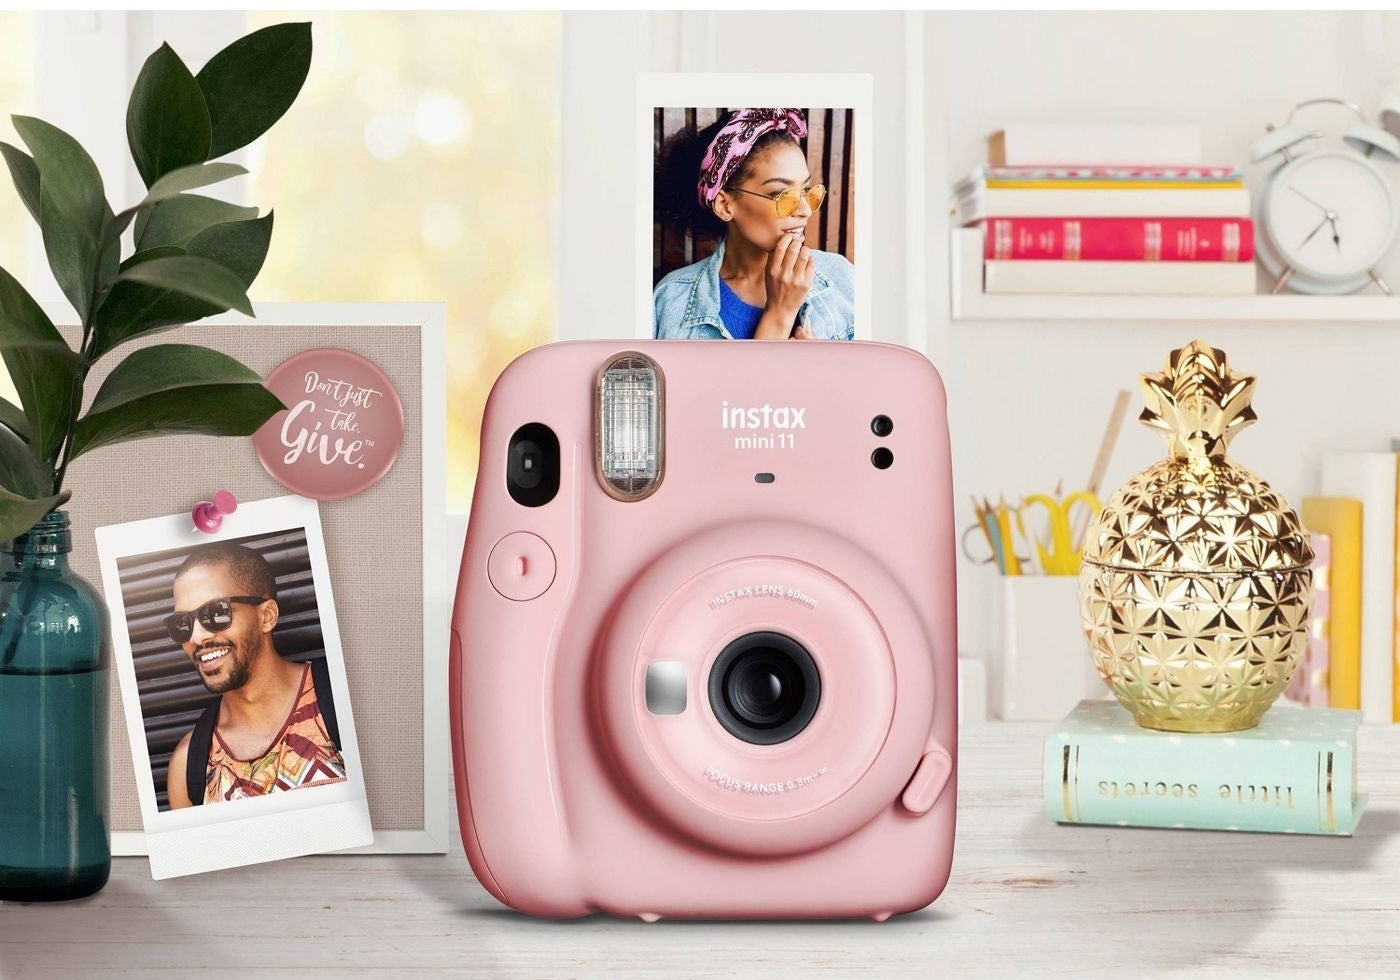 The camera, which is compact and has a built-in flash, in pink